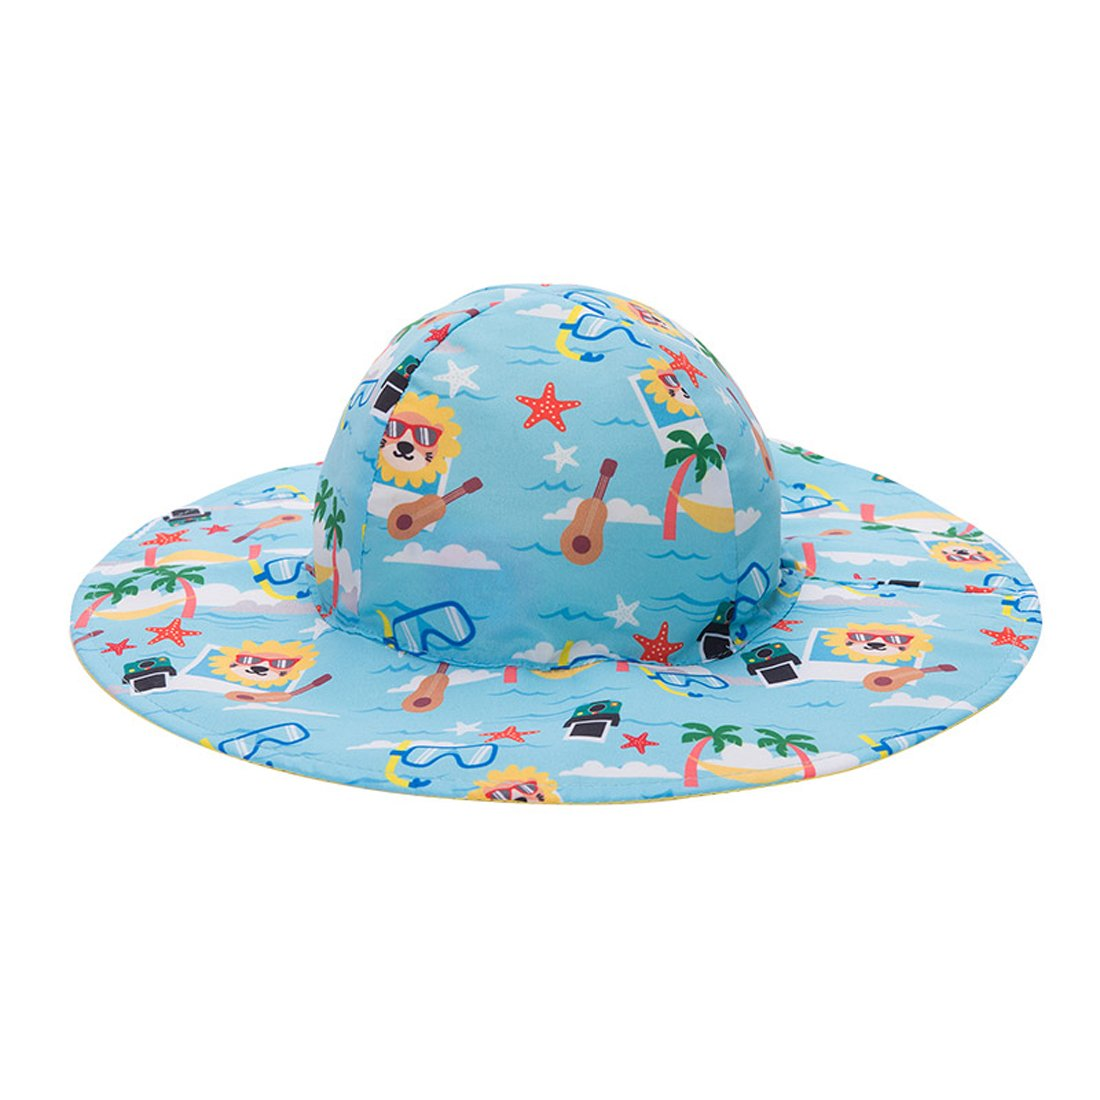 LoveKids Reversible Sun Protection Hat for Girls and Boys(A28007Yellow)